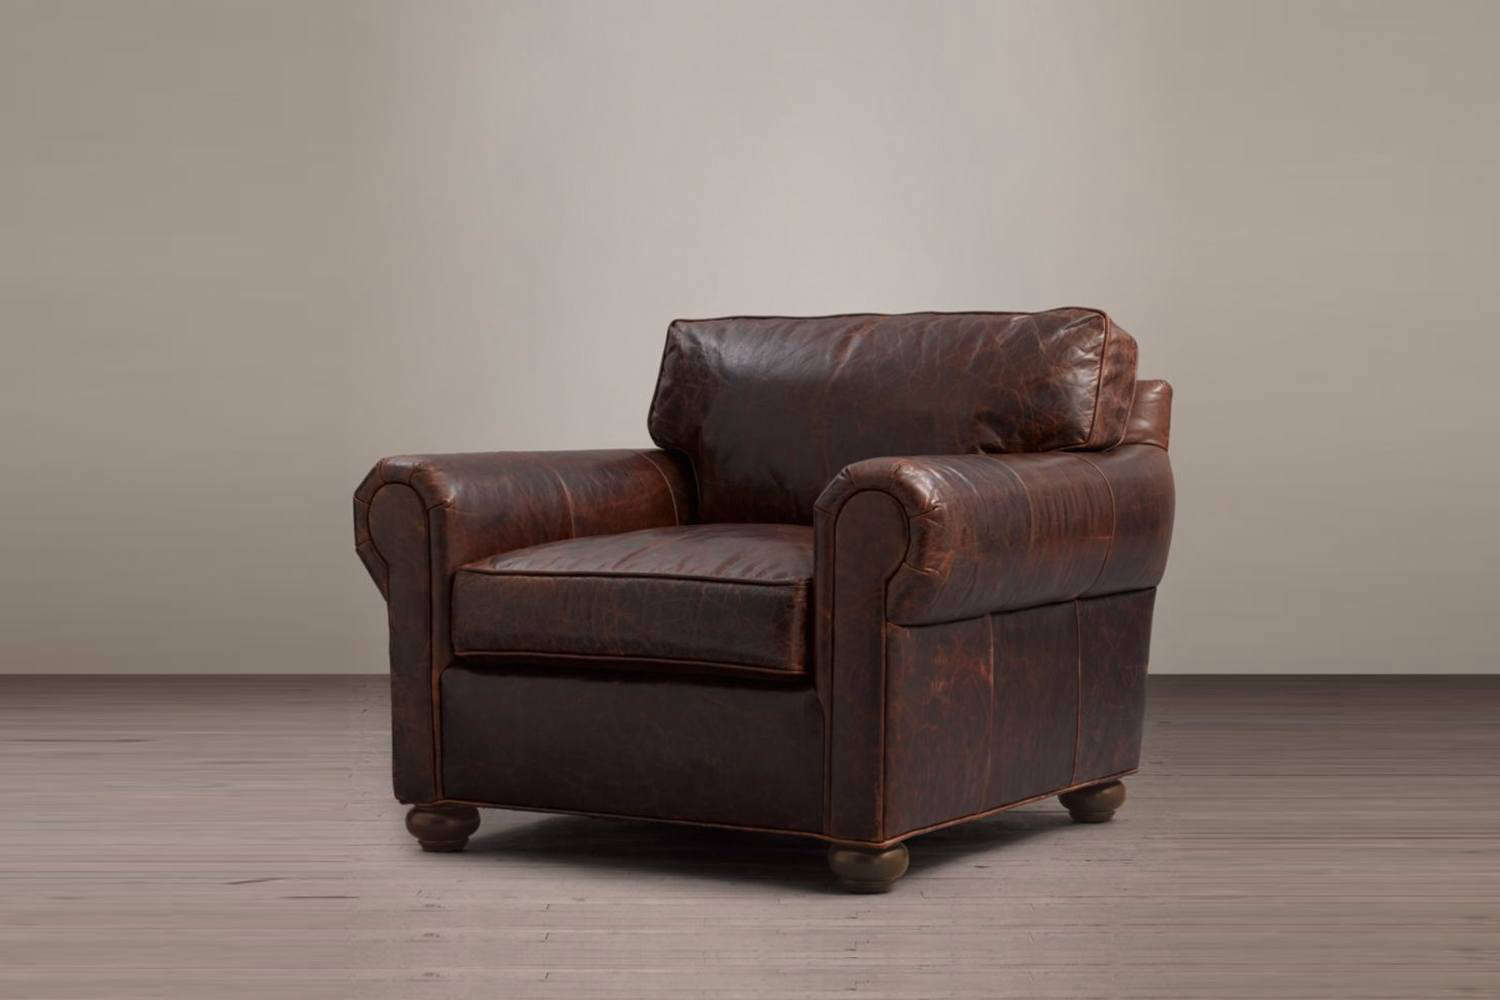 Restoration Hardware Leather Chairs Original Lancaster Leather Chair